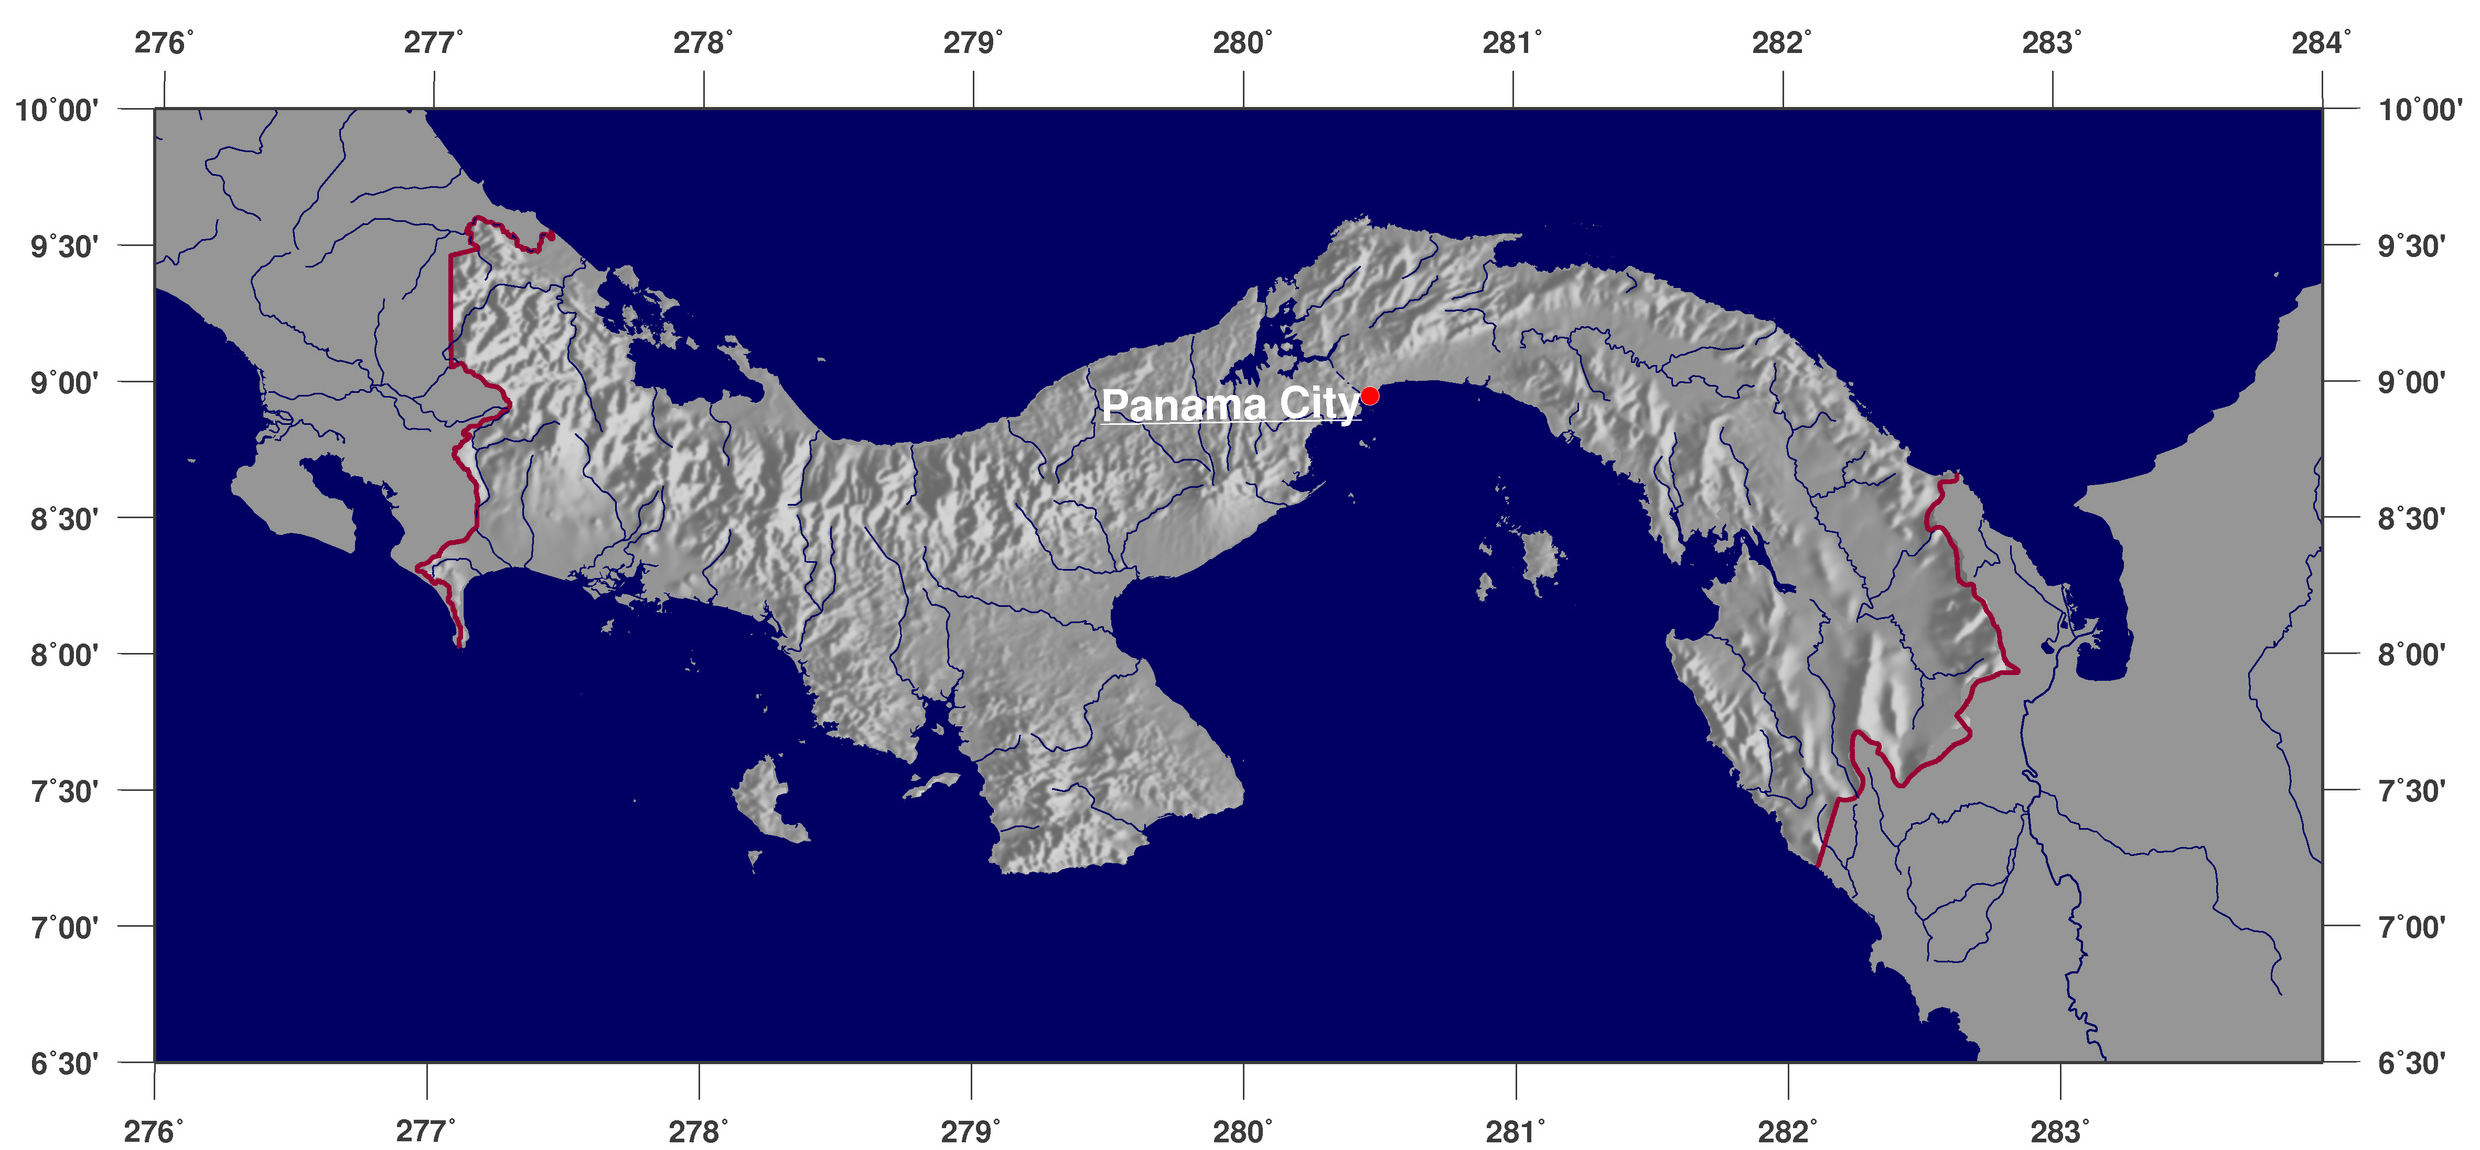 Shaded relief map of Panama